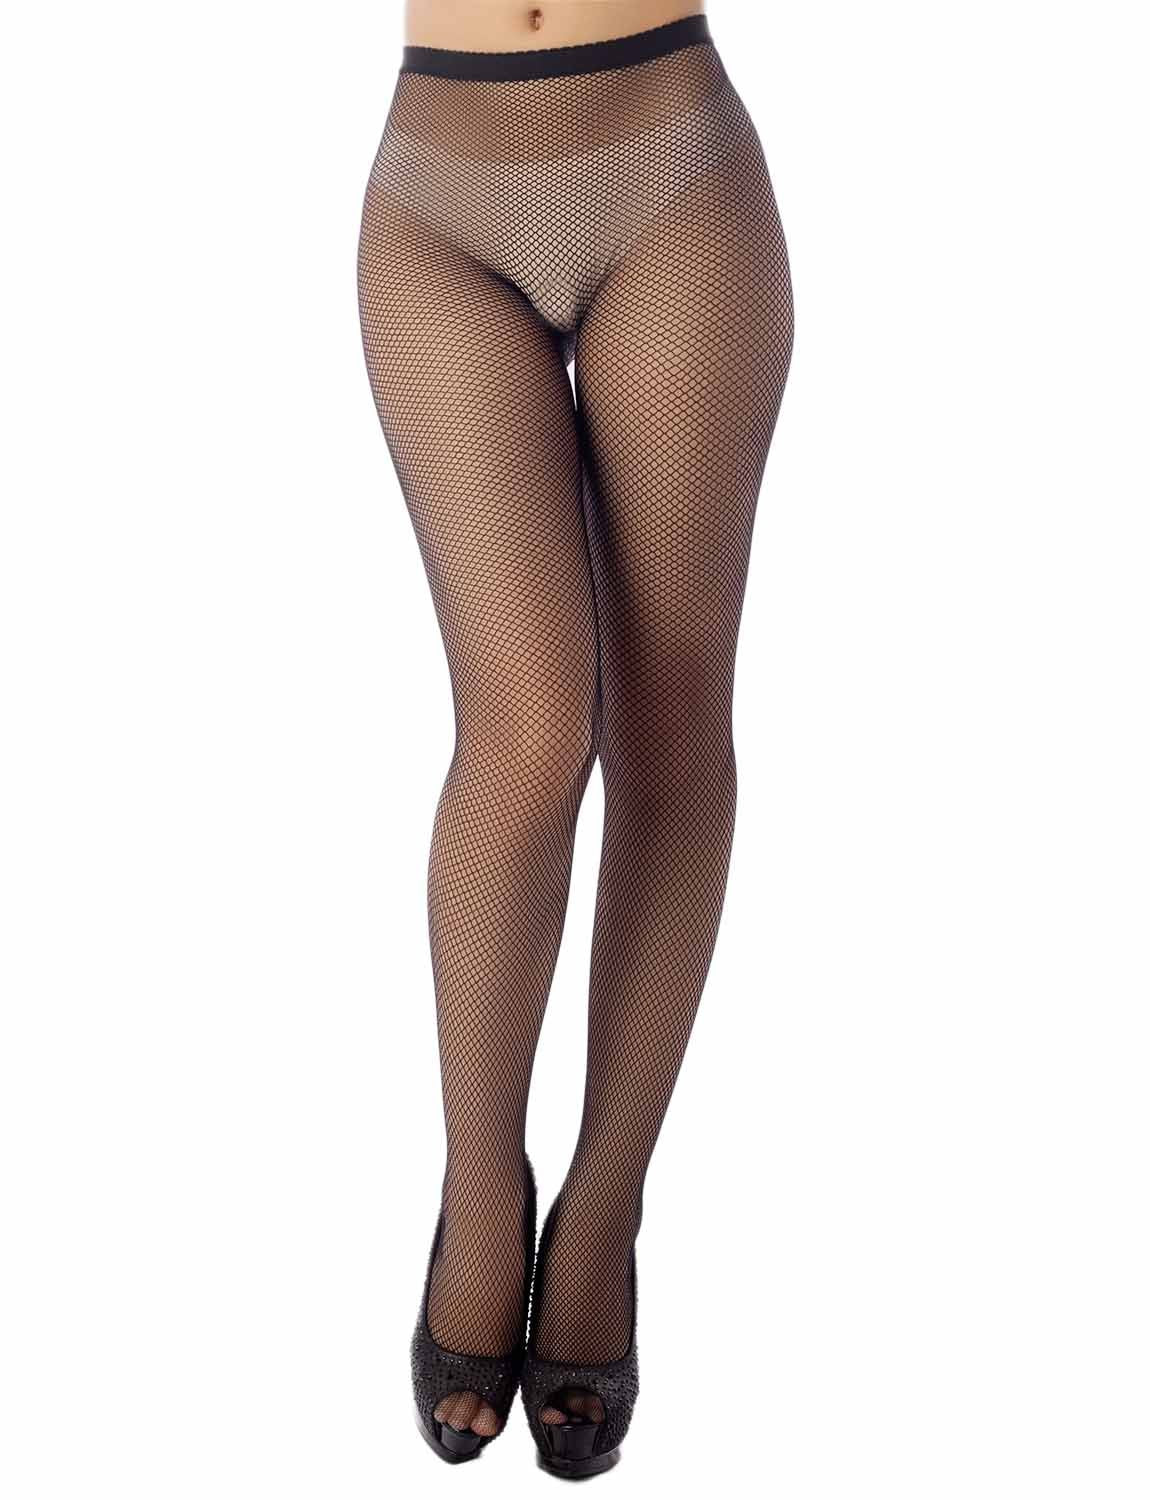 Women's Stretch Fishinet Tights For Ripped Jeans Mid Waist Sexy Stockings, Size: One Size, M4 Black